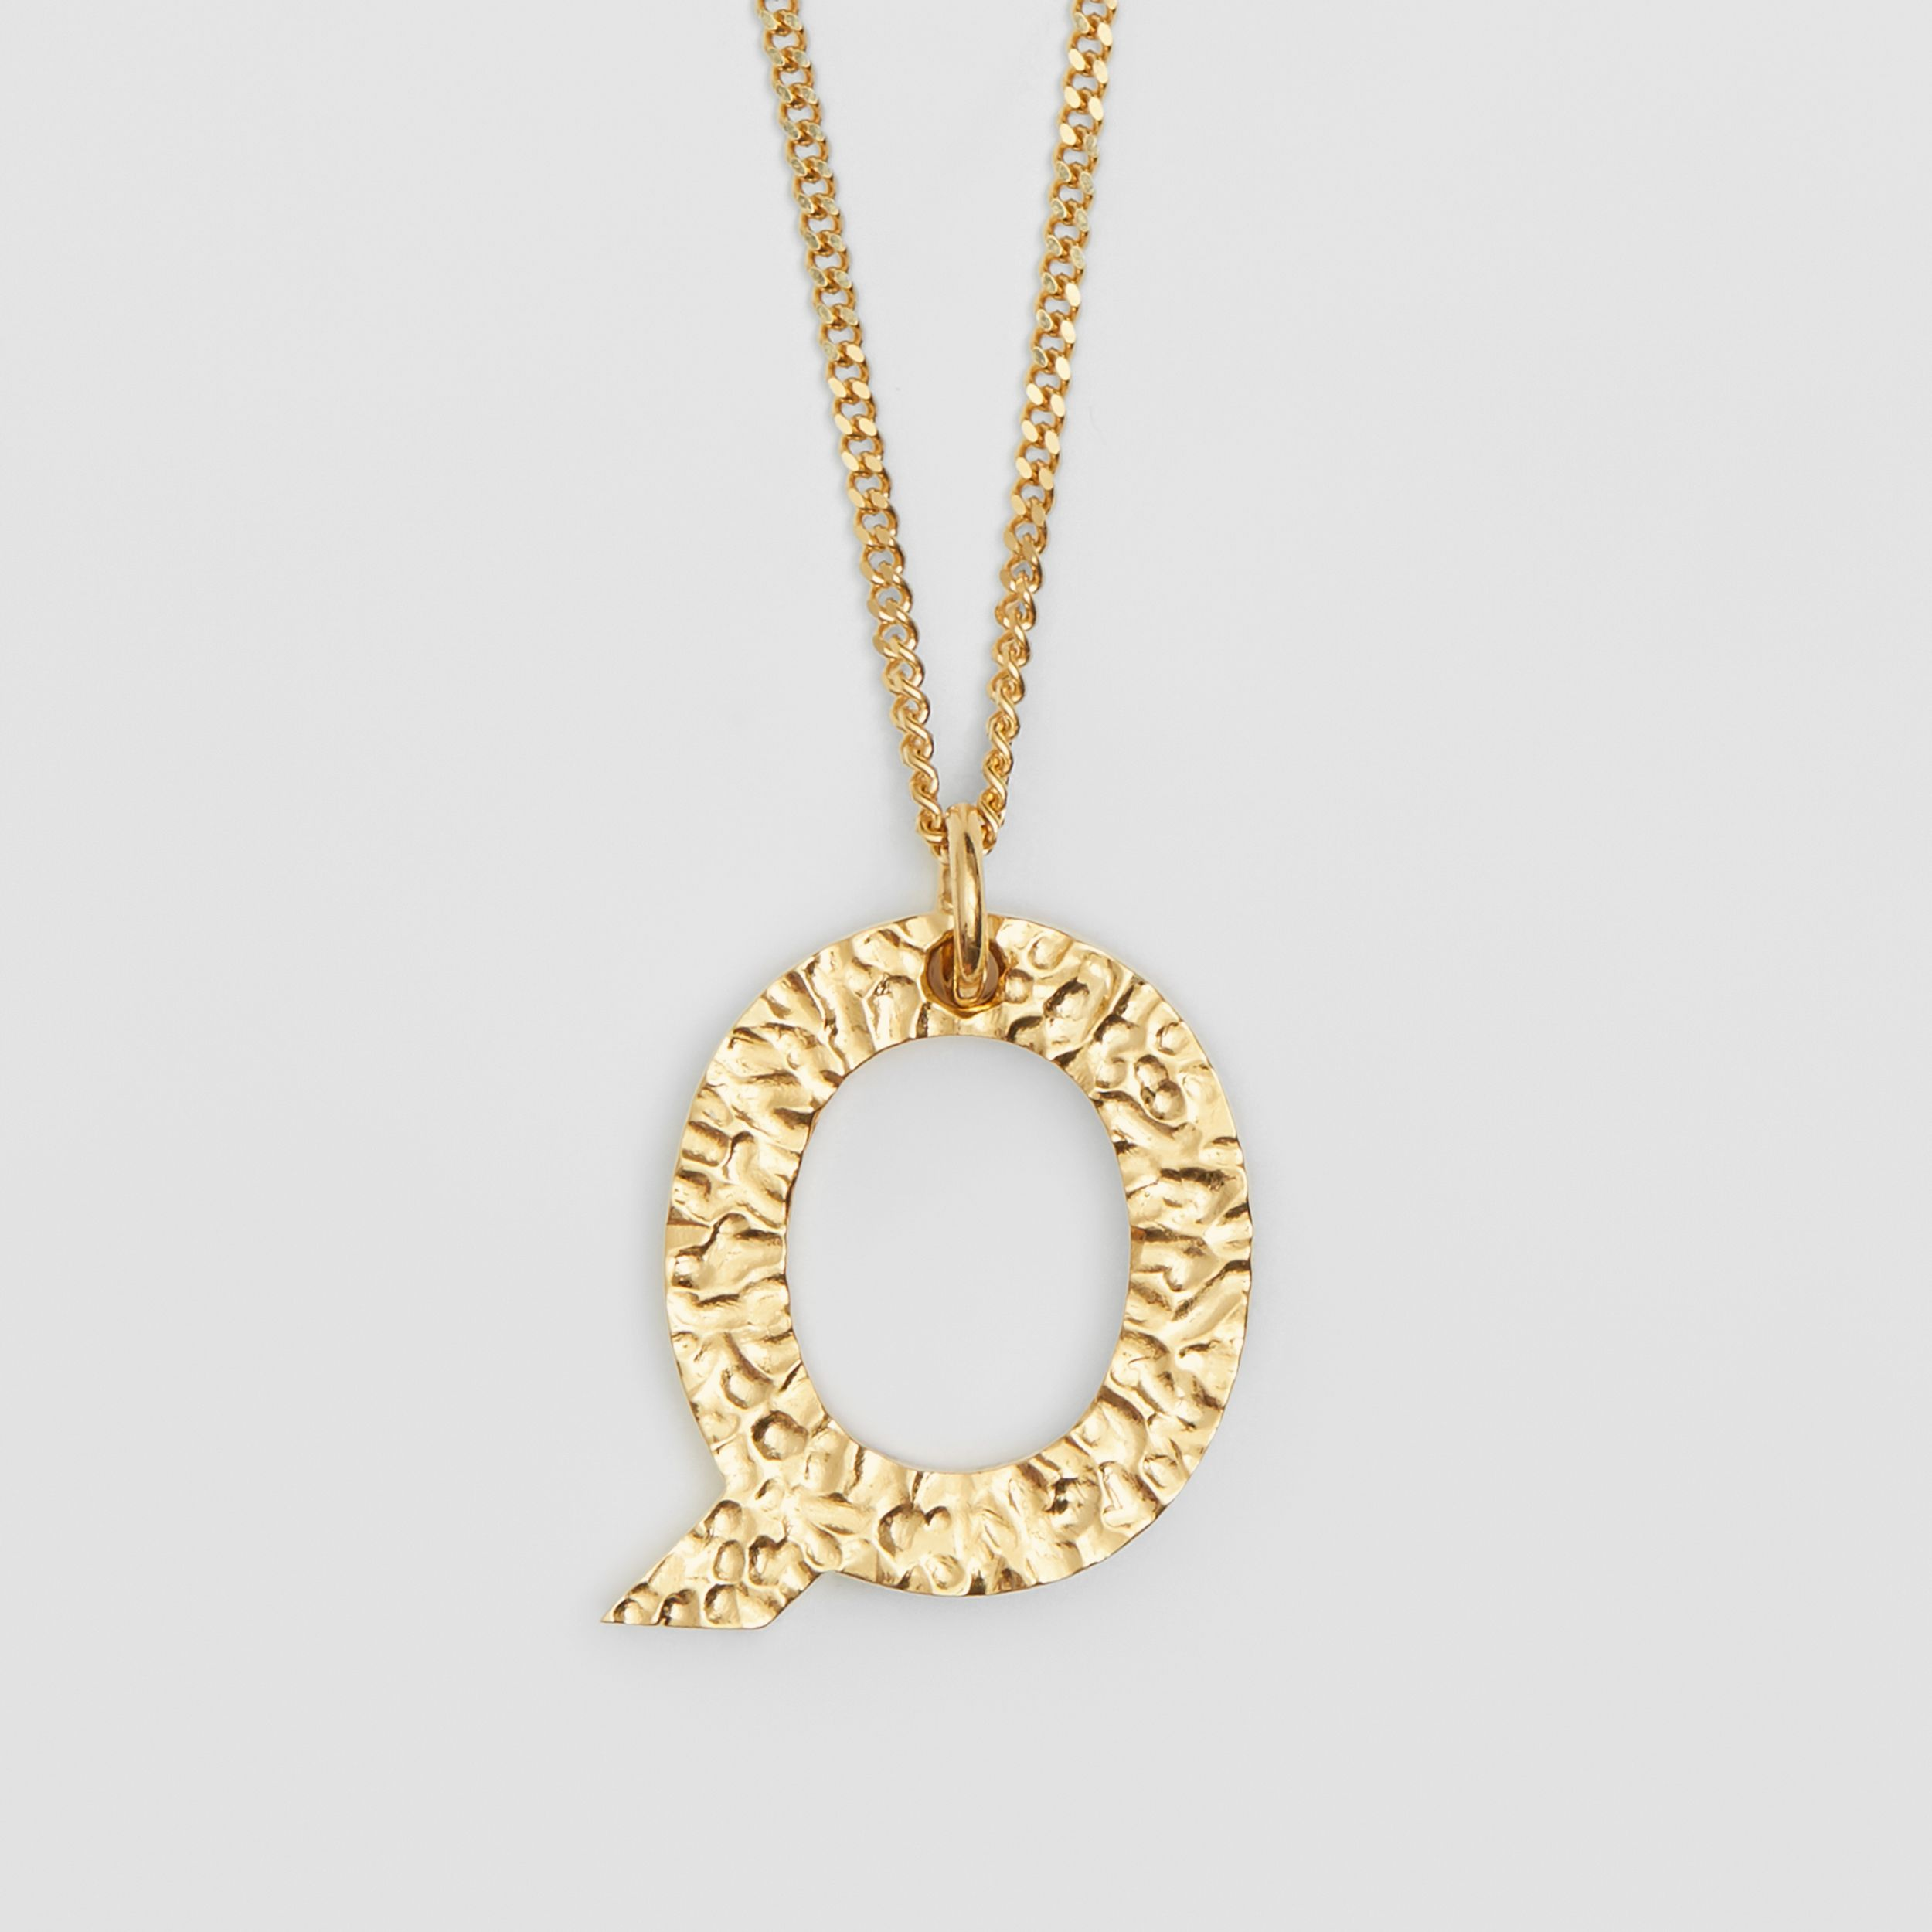 'Q' Alphabet Charm Gold-plated Necklace in Light - Women | Burberry - 3